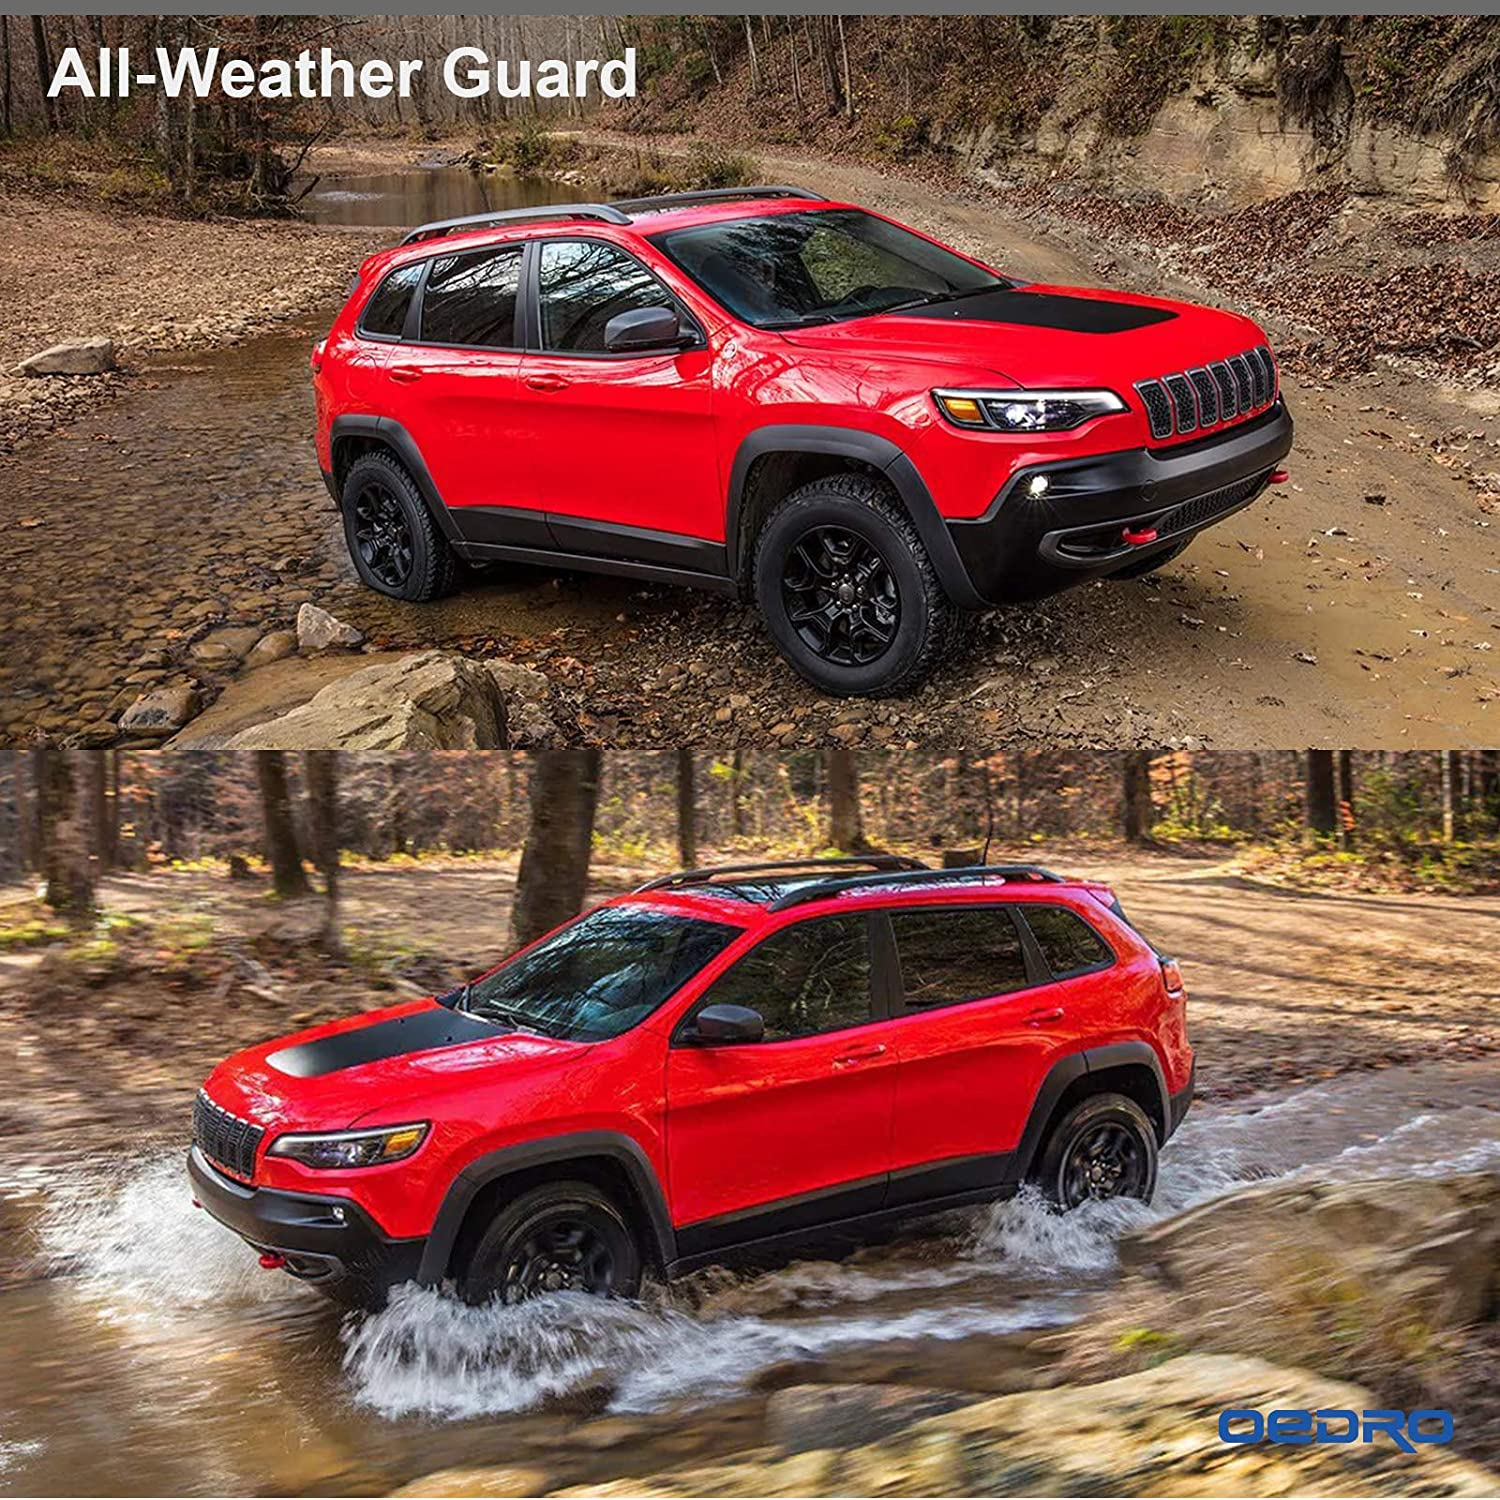 oEdRo Floor Mats Compatible for 2015-2019 Jeep Cherokee Not for Grand Cherokee Black TPE All-Weather Guard 1st and 2nd Row Liners